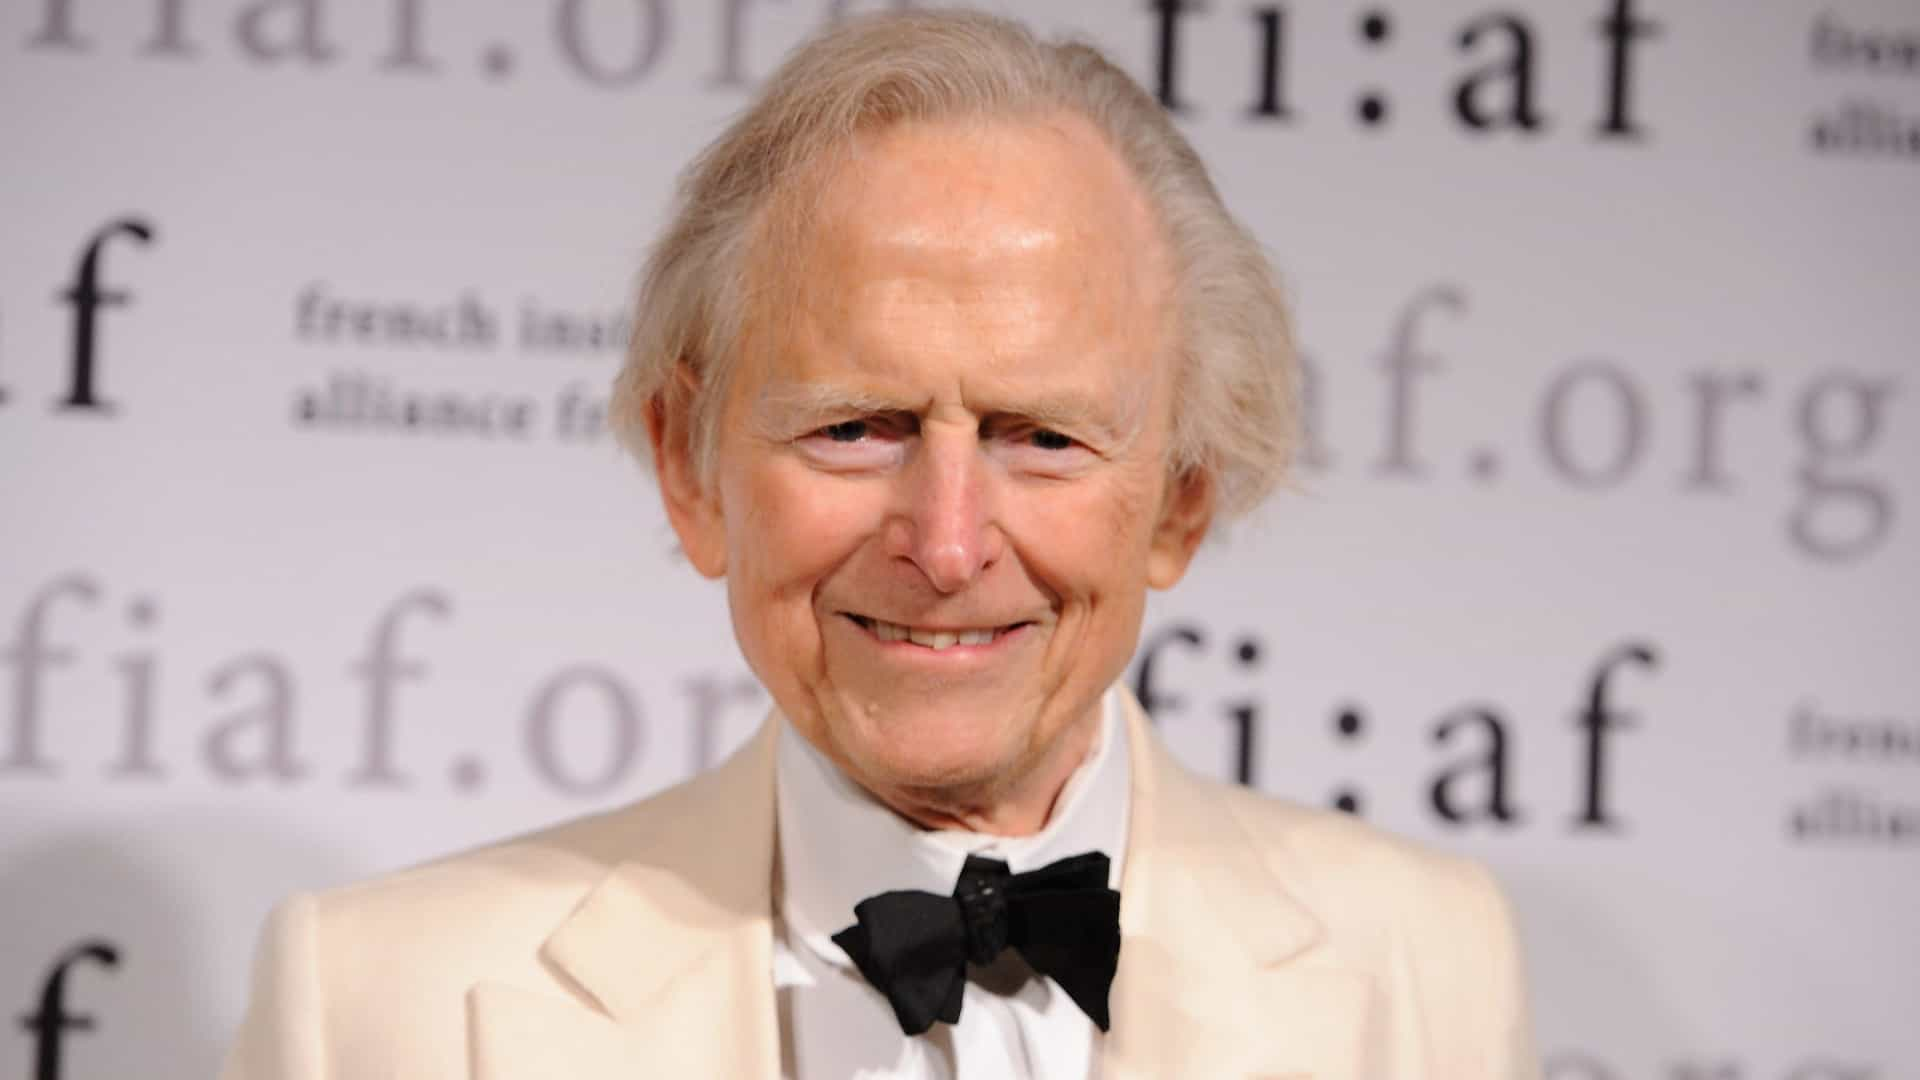 A morte de Tom Wolfe